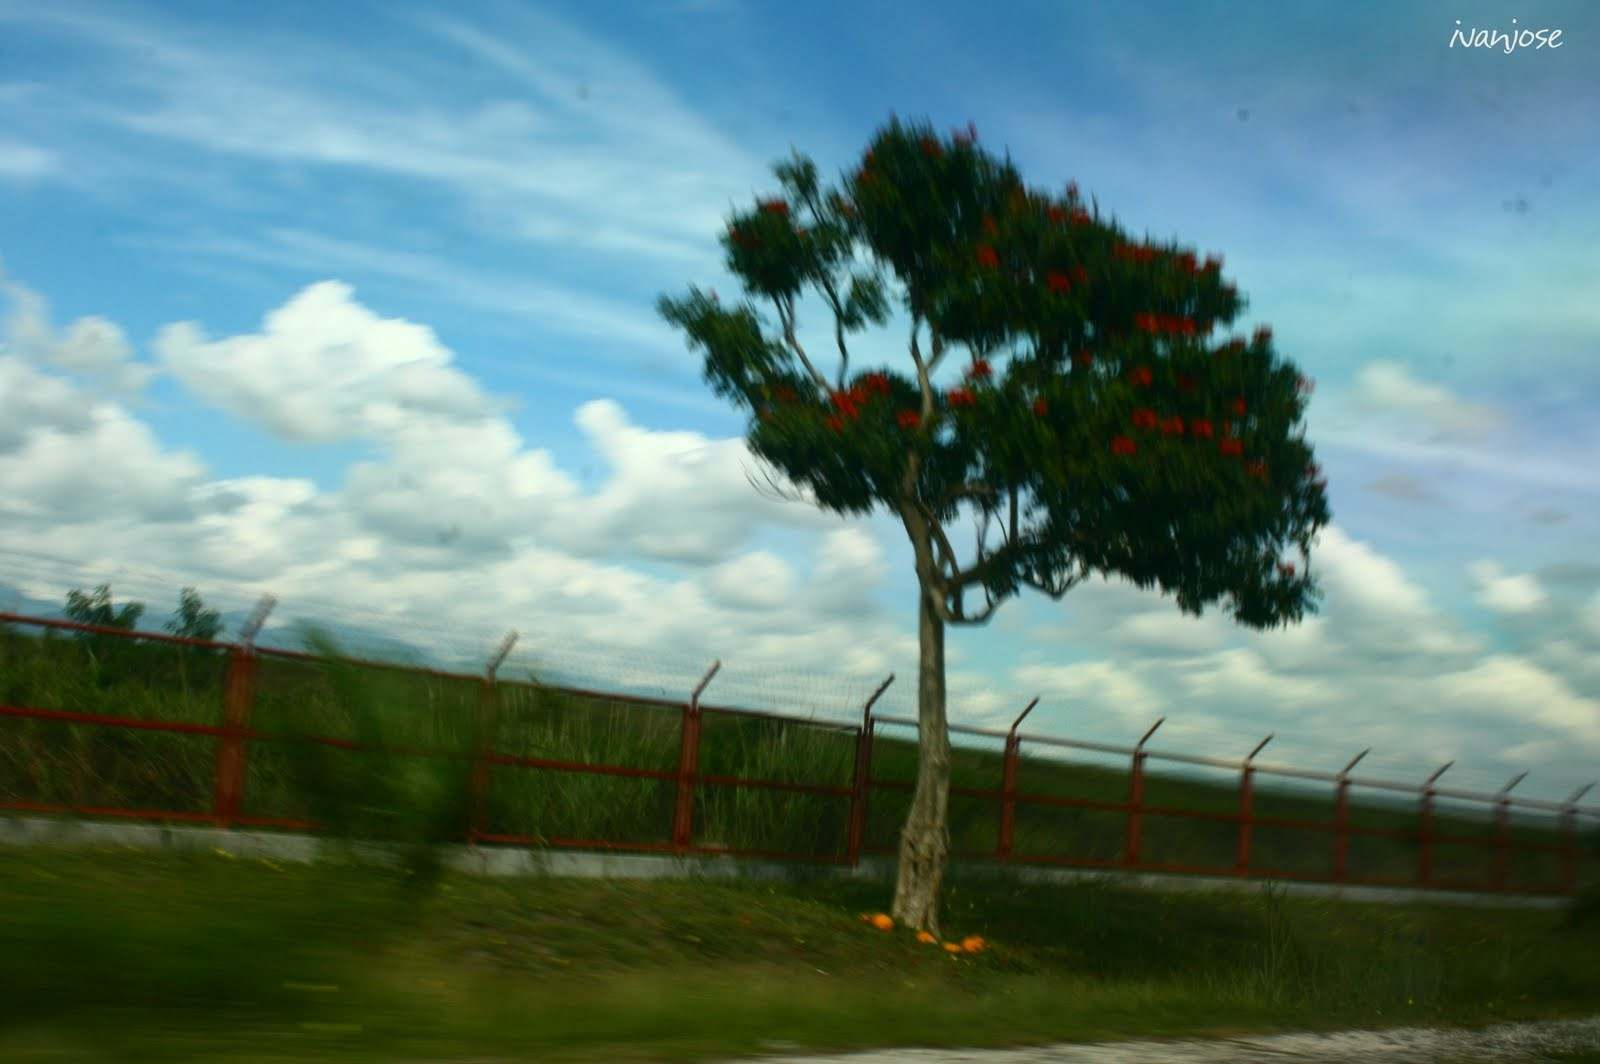 A lone tree by the roadside in Mindanao